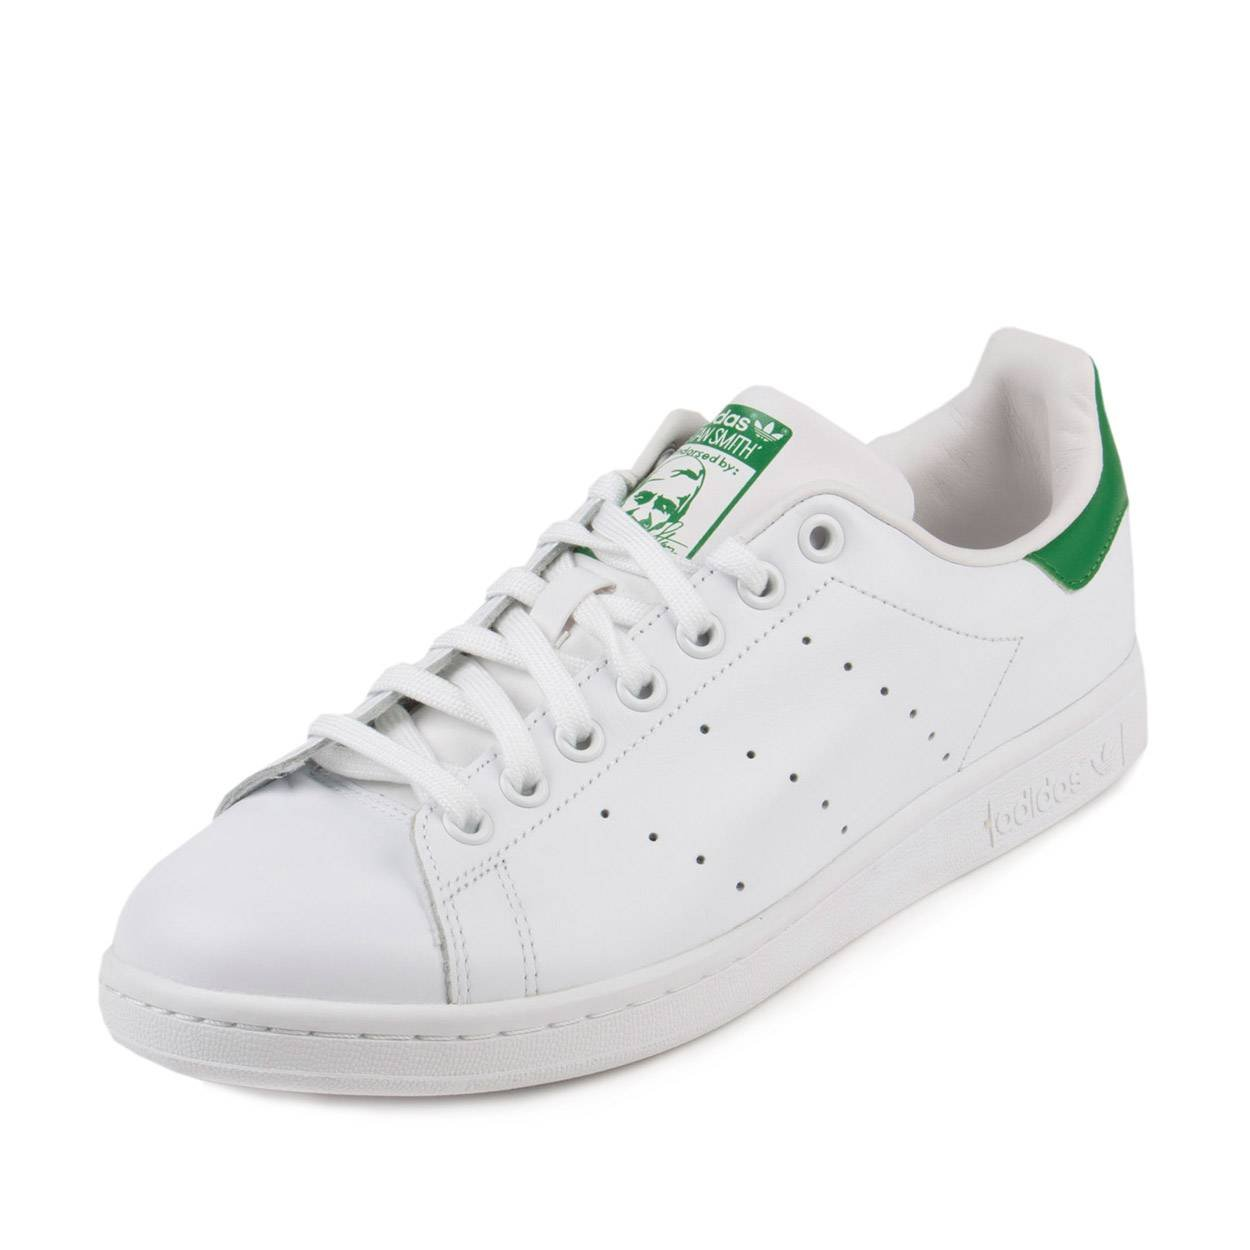 newest aec24 681ce adidas Originals Men's Stan Smith Leather White/Green Athletic Sneakers,  White, Size 5